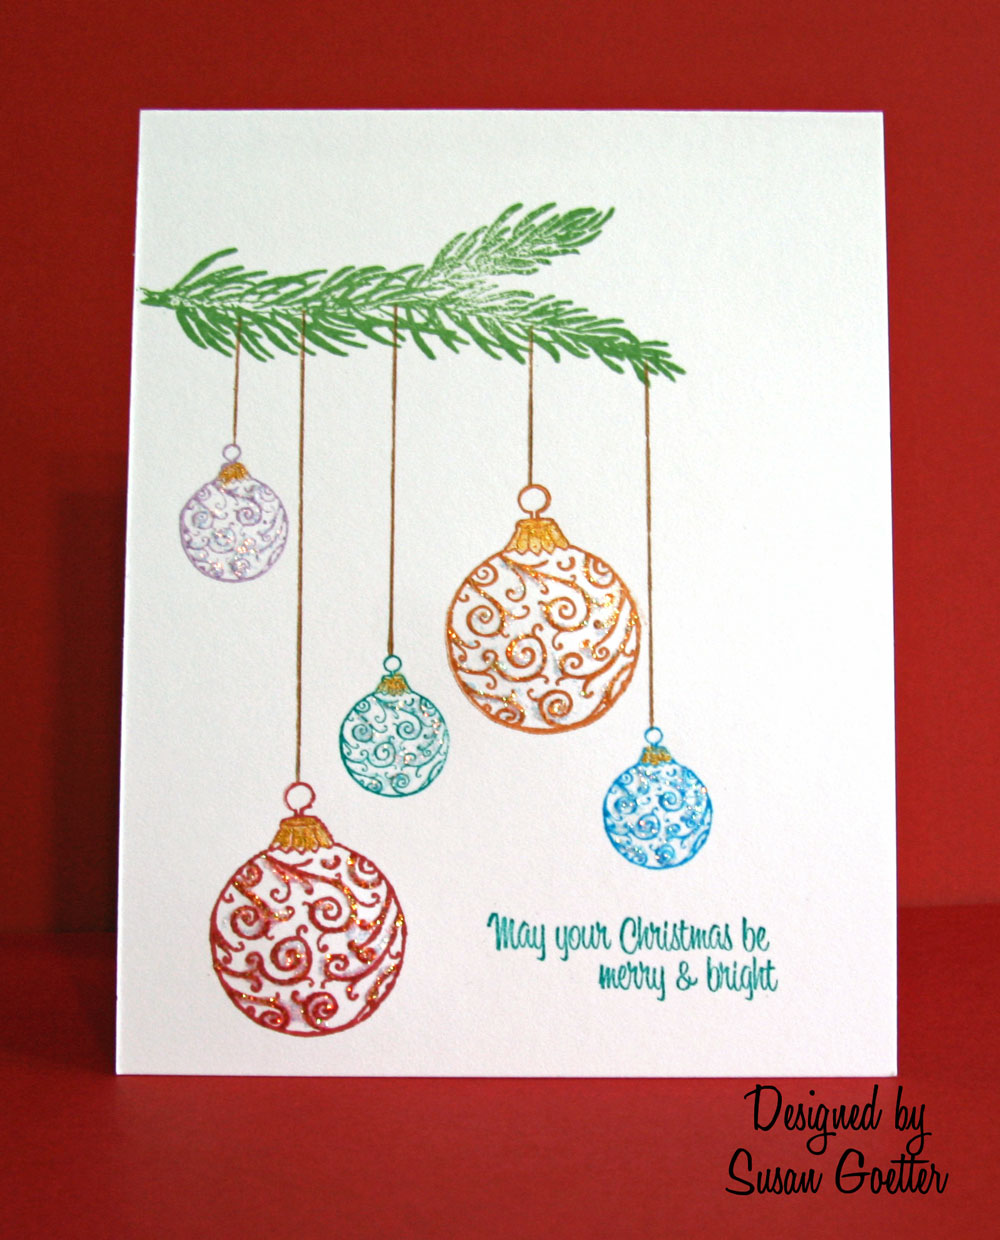 Susan goetter november 2010 for How to draw easy christmas cards